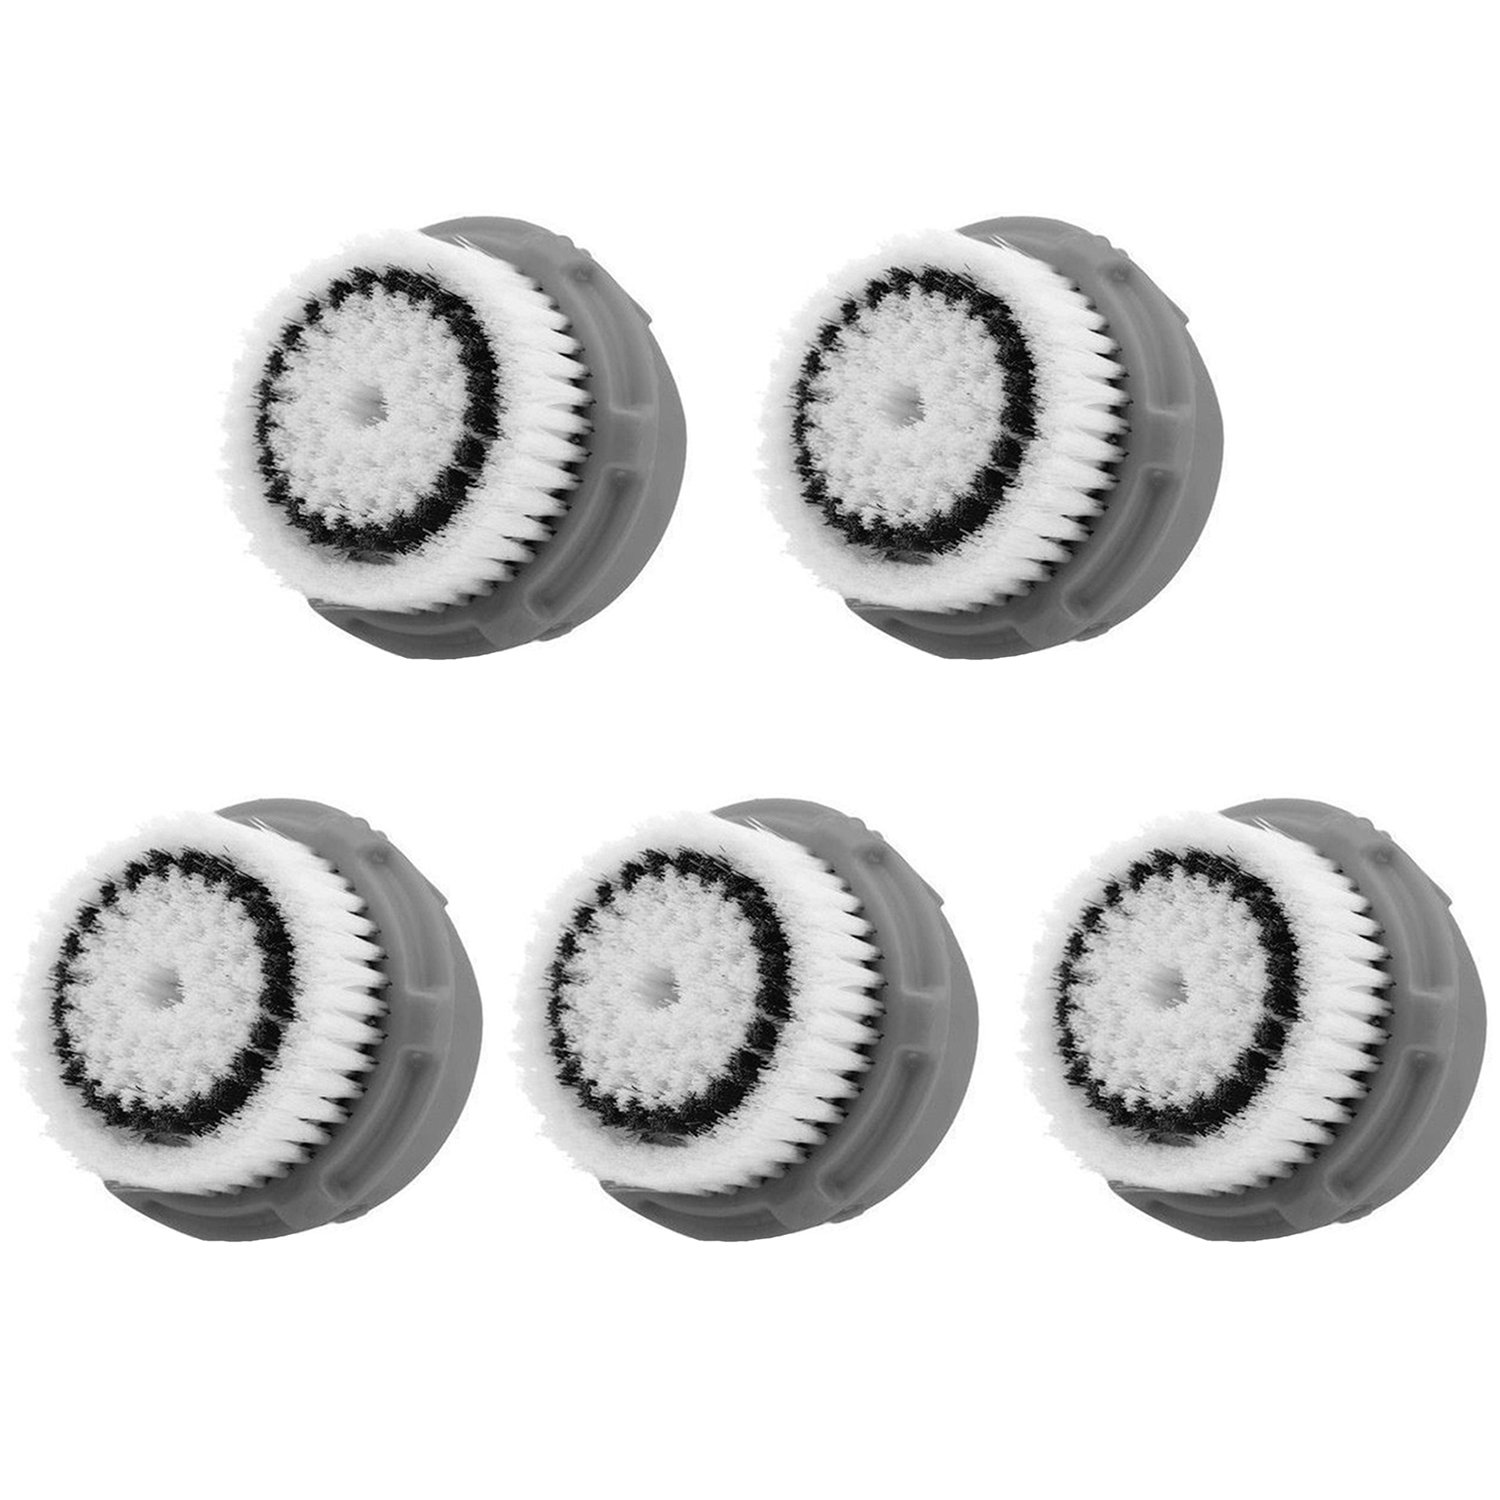 LSQtronics Normal skin Facial Brush Heads for Clarisonic. Face Cleansing Brush Heads for Daily Skin Care. Compatible with Clarisonic MIA, MIA 2, ARIA, PRO and PLUS Cleansing Systems. (5-Pack Normal skin Brush Head)